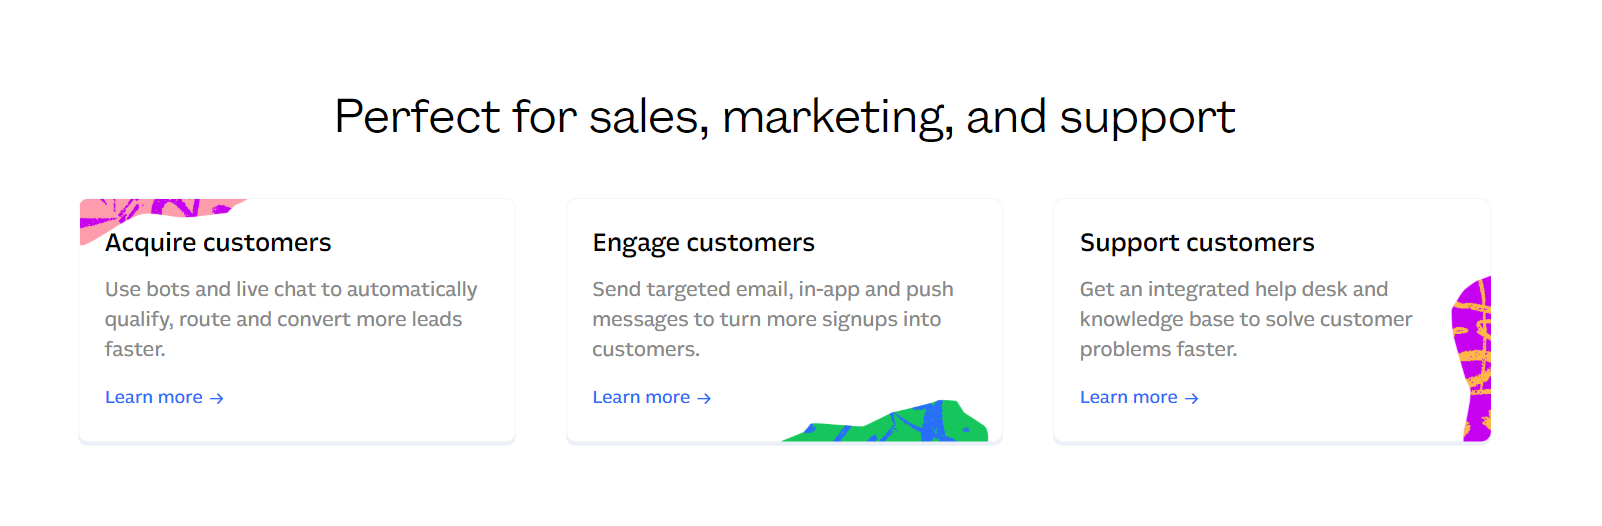 Intercom Review- Perfect for sales and support